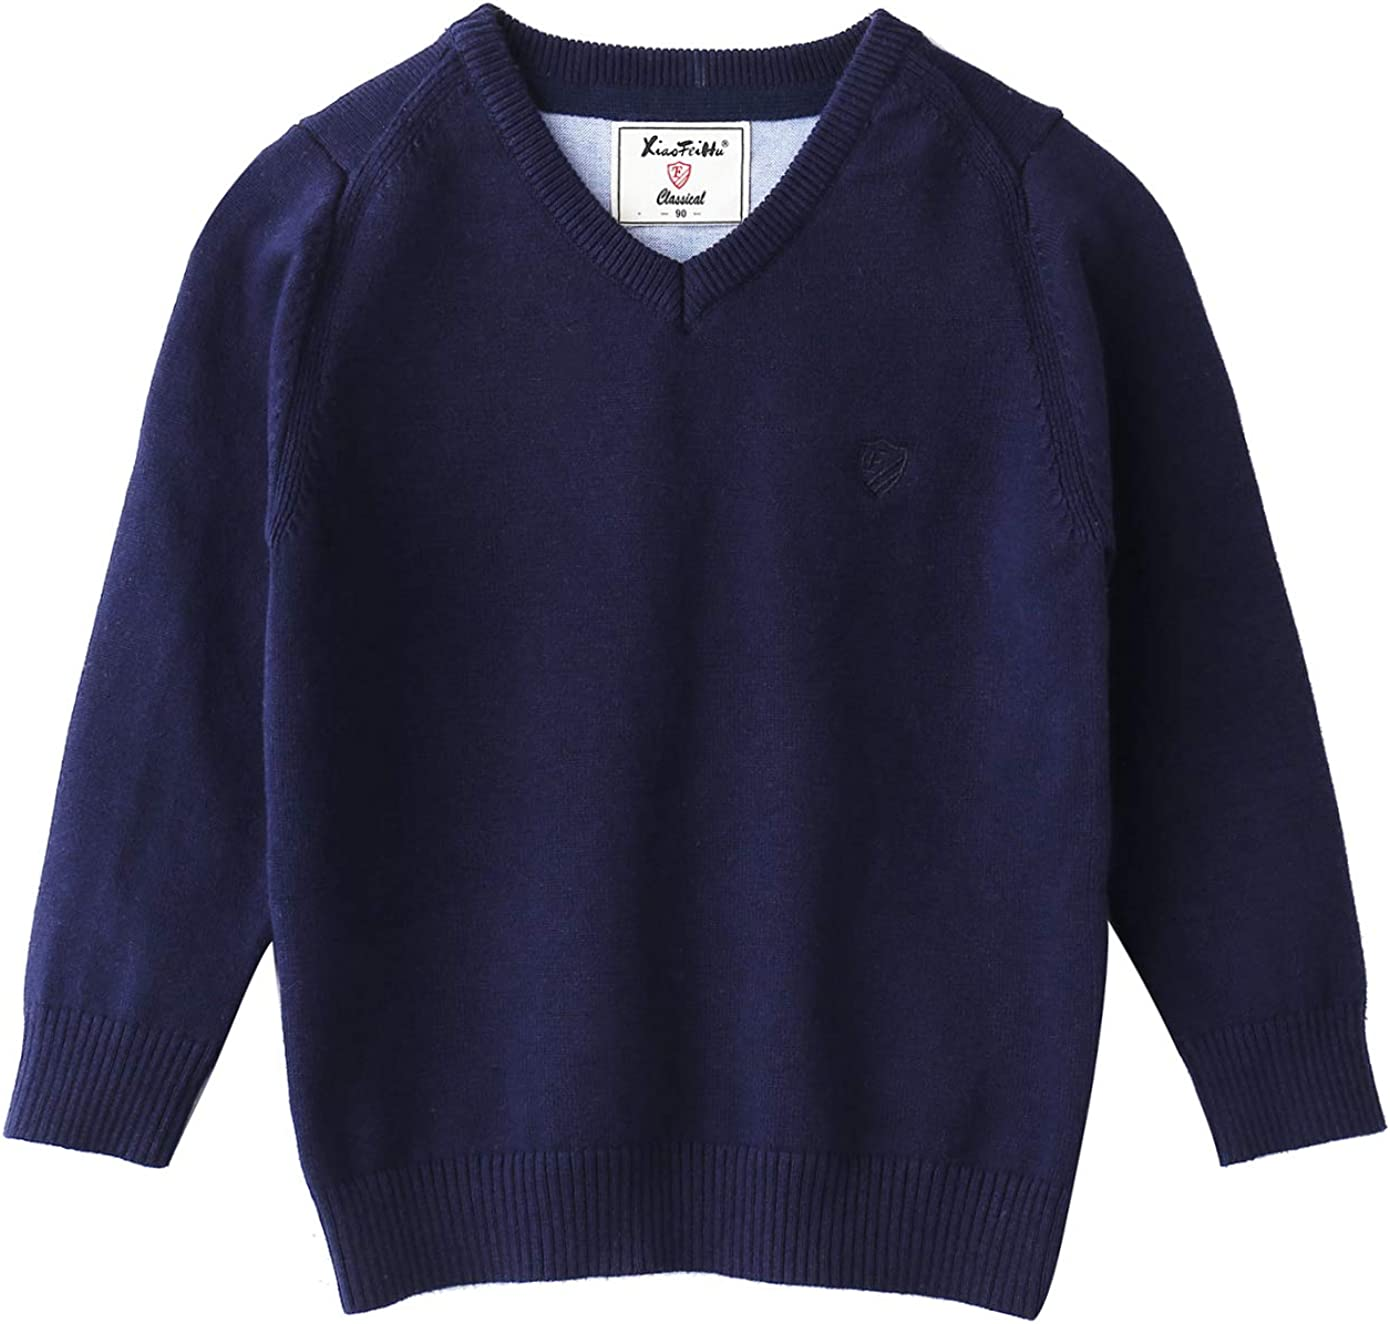 Orchid/_11 Baby Boys Sweaters V Neck Long Sleeve Solid Color Pullover Cotton Knit Sweater